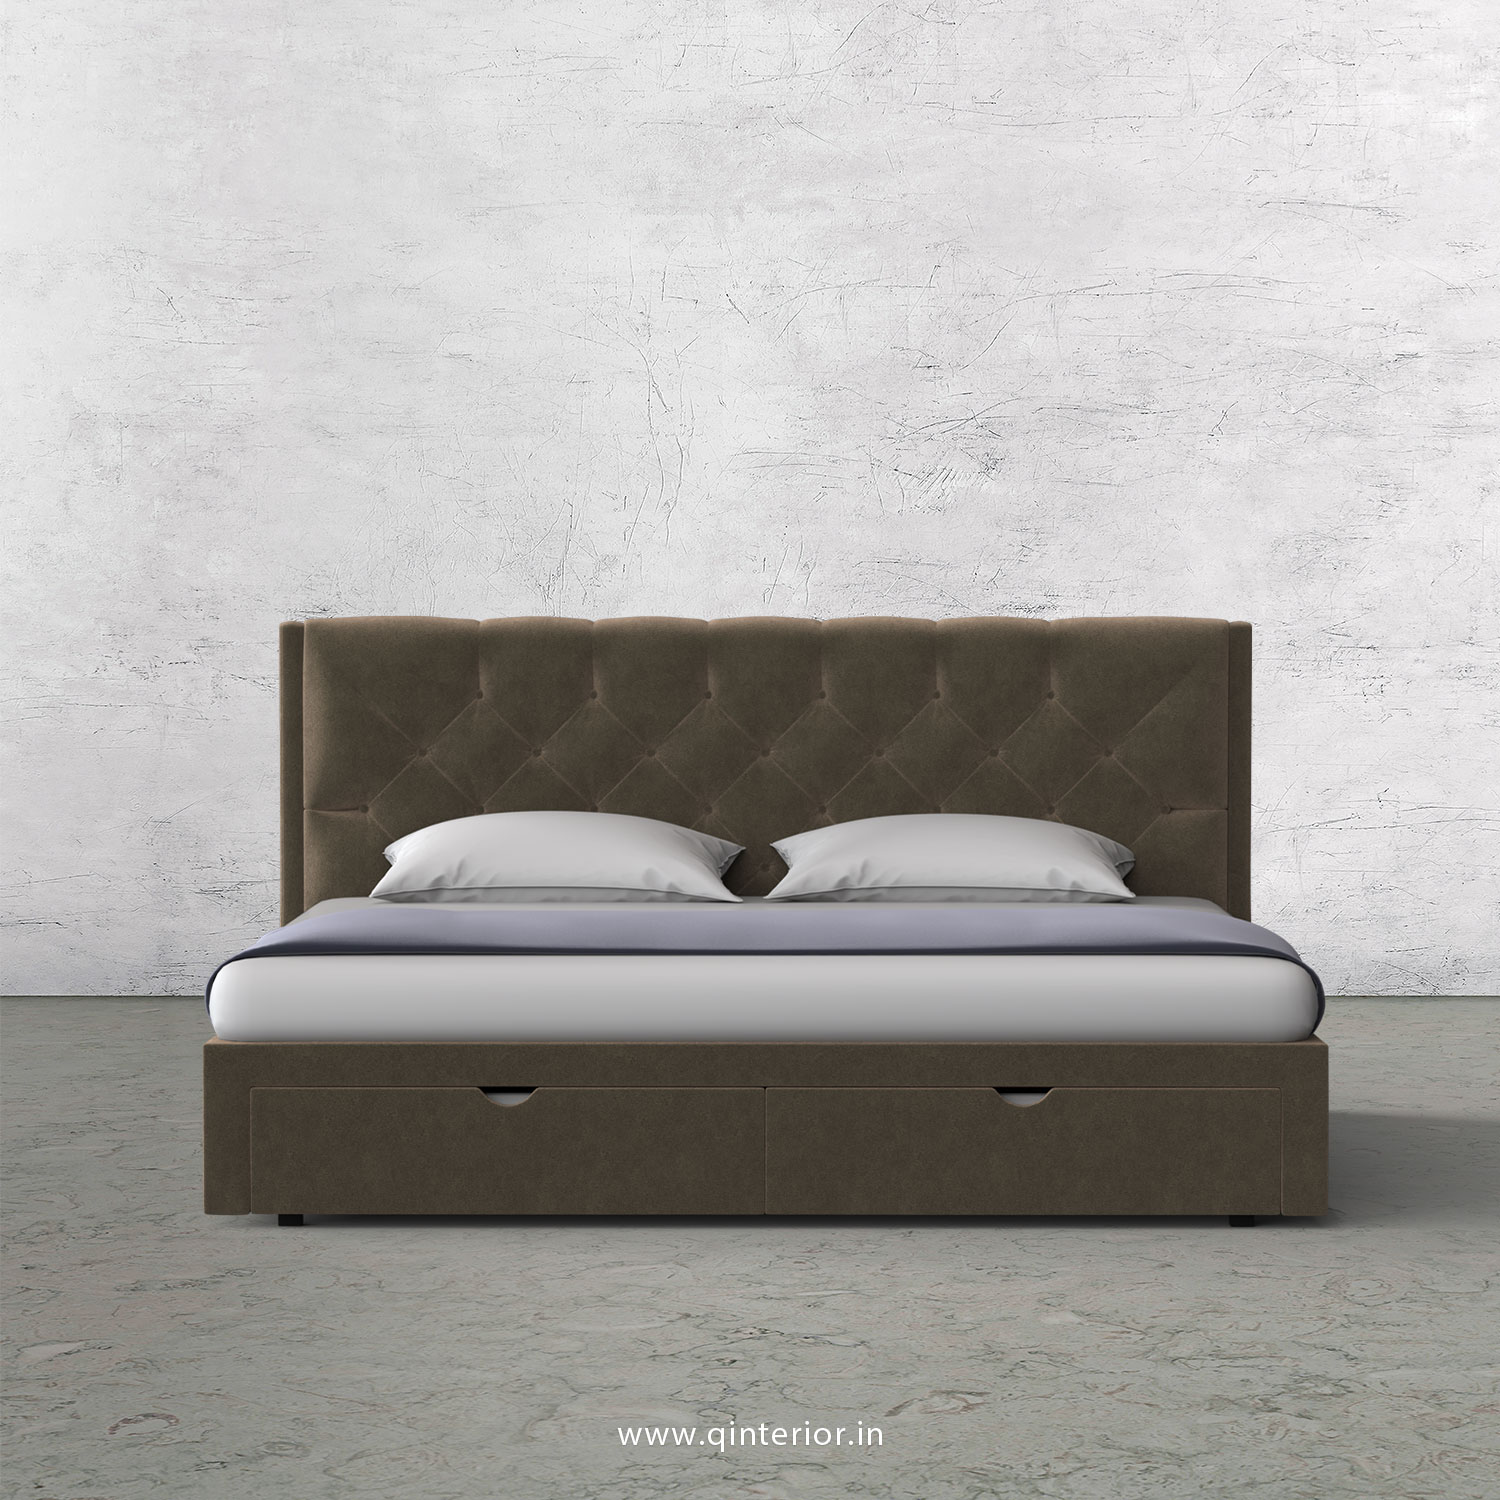 Scorpius King Size Storage Bed in Velvet Fabric - KBD001 VL11